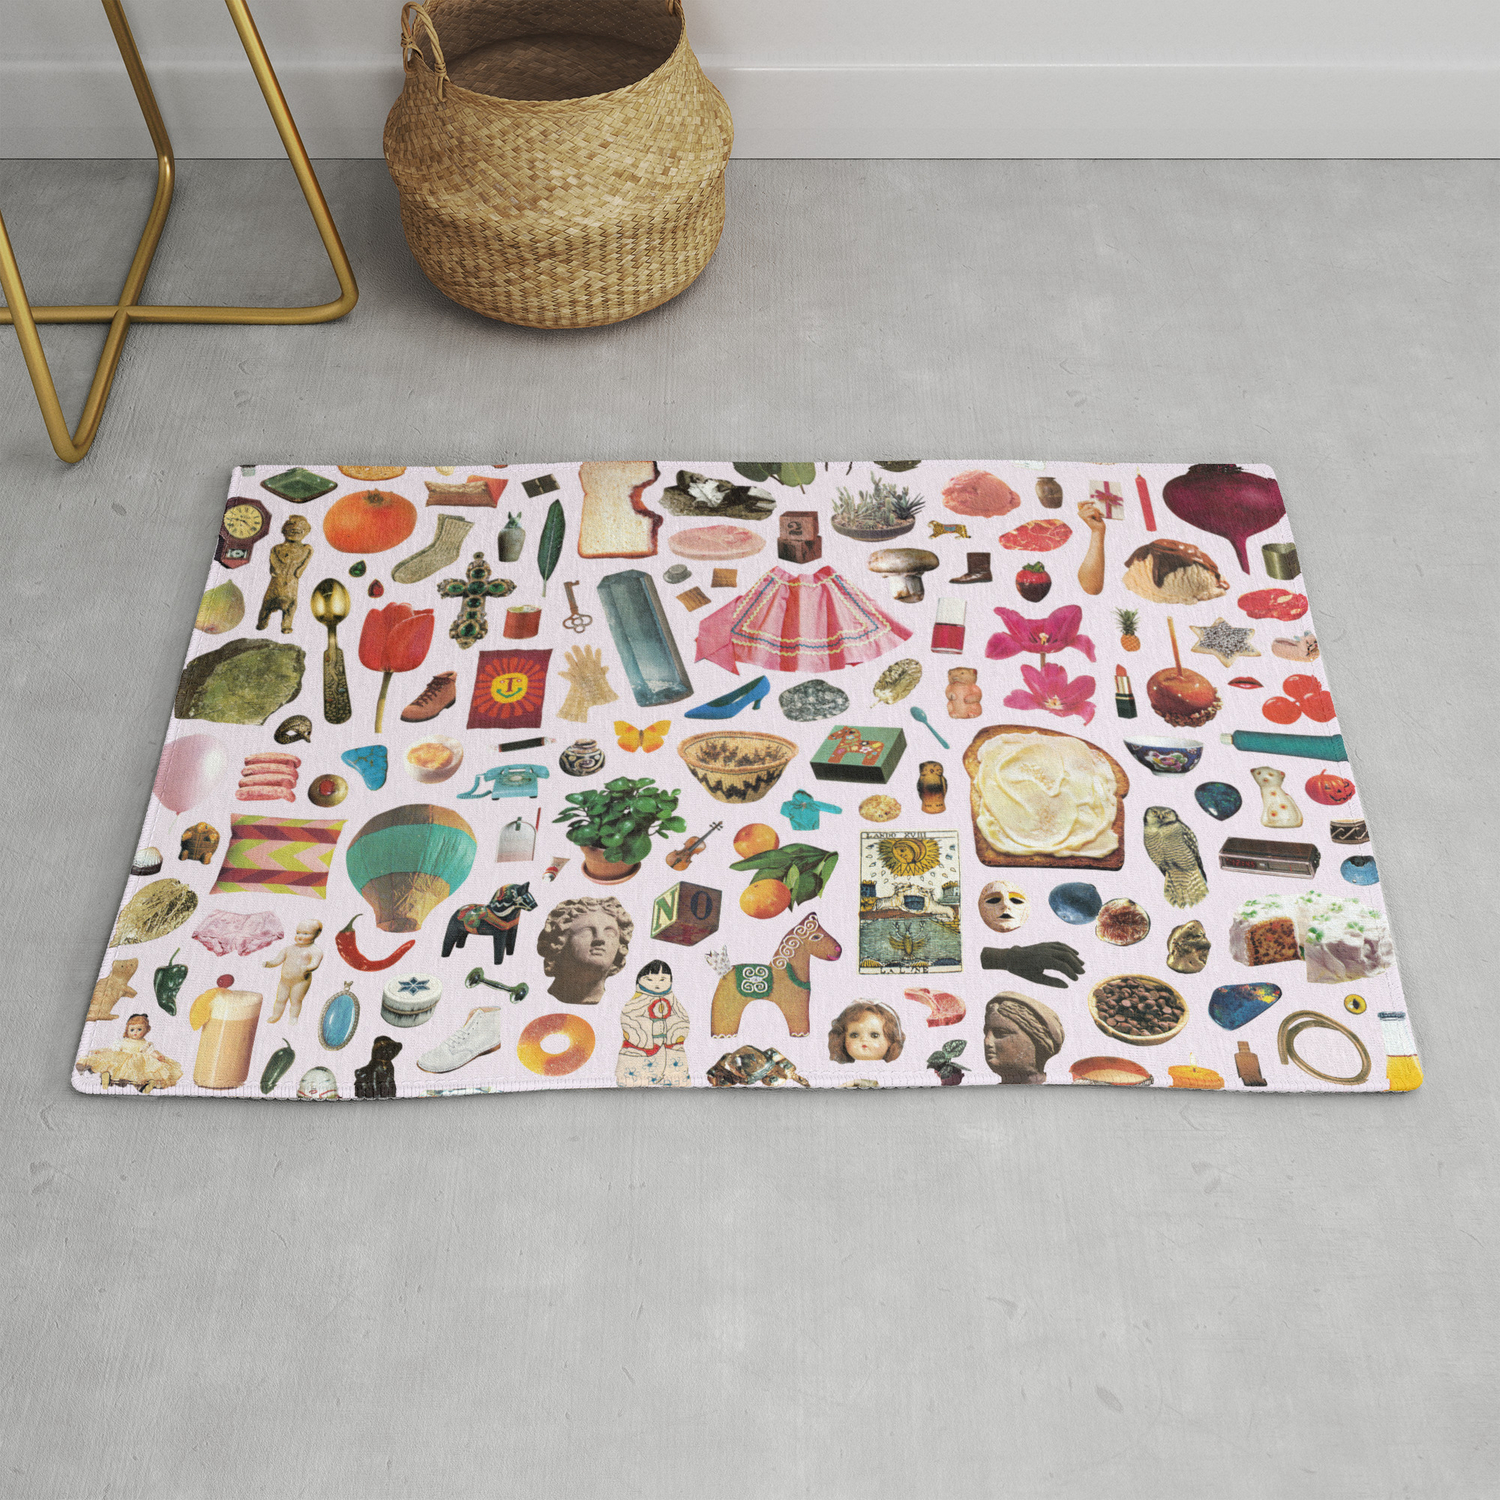 Catalogue Rug By Bethhoeckelcollage